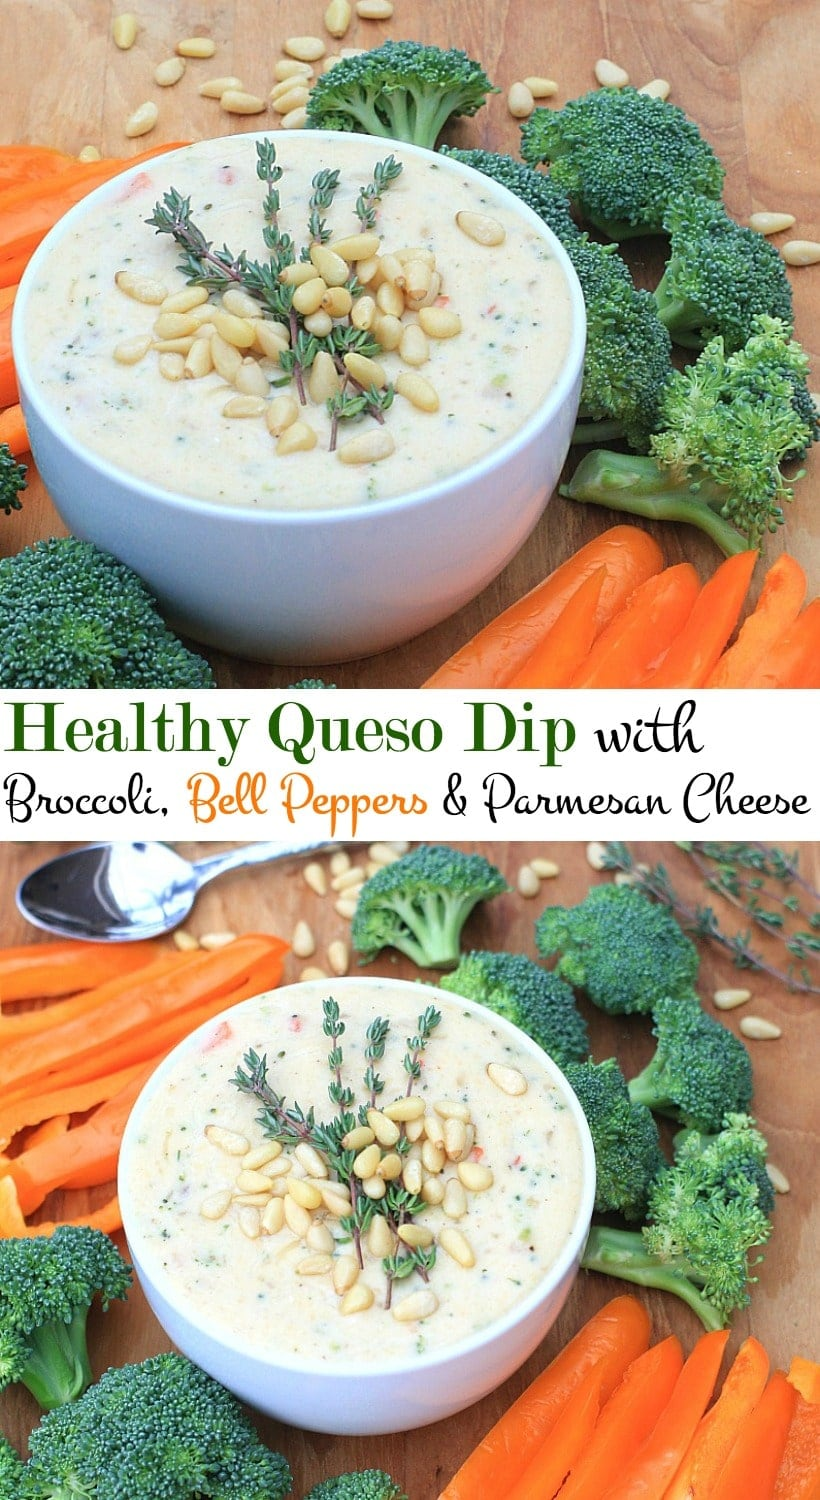 Healthy Queso Dip with Broccoli, Bell Peppers, and Parmesan Cheese #Sponsored | Gluten Free, Vegetarian, and Grain Free Recipe @thespicyrd